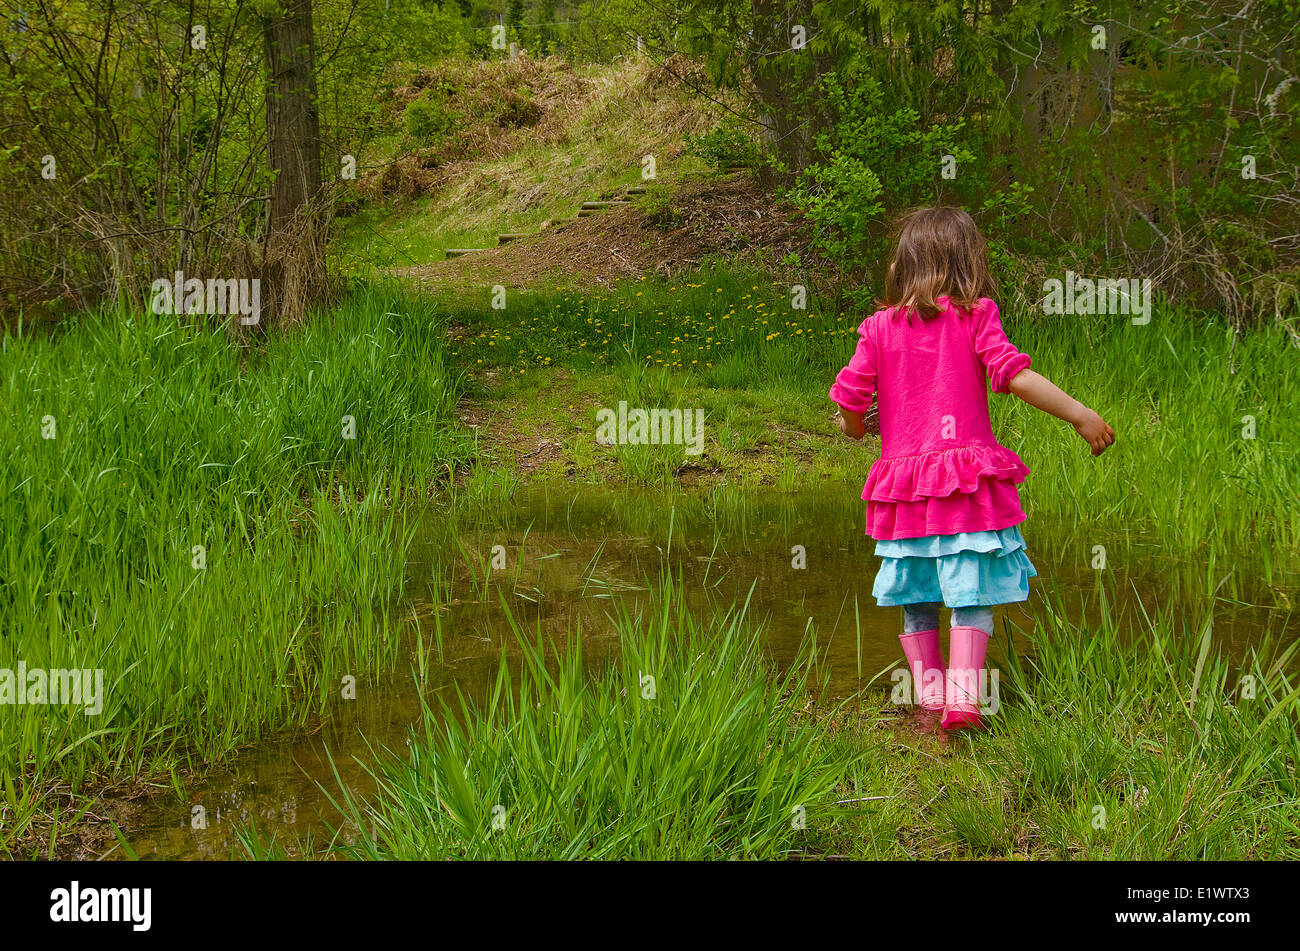 Young girl playing in puddles, Enderby, British Columbia, Canada. - Stock Image